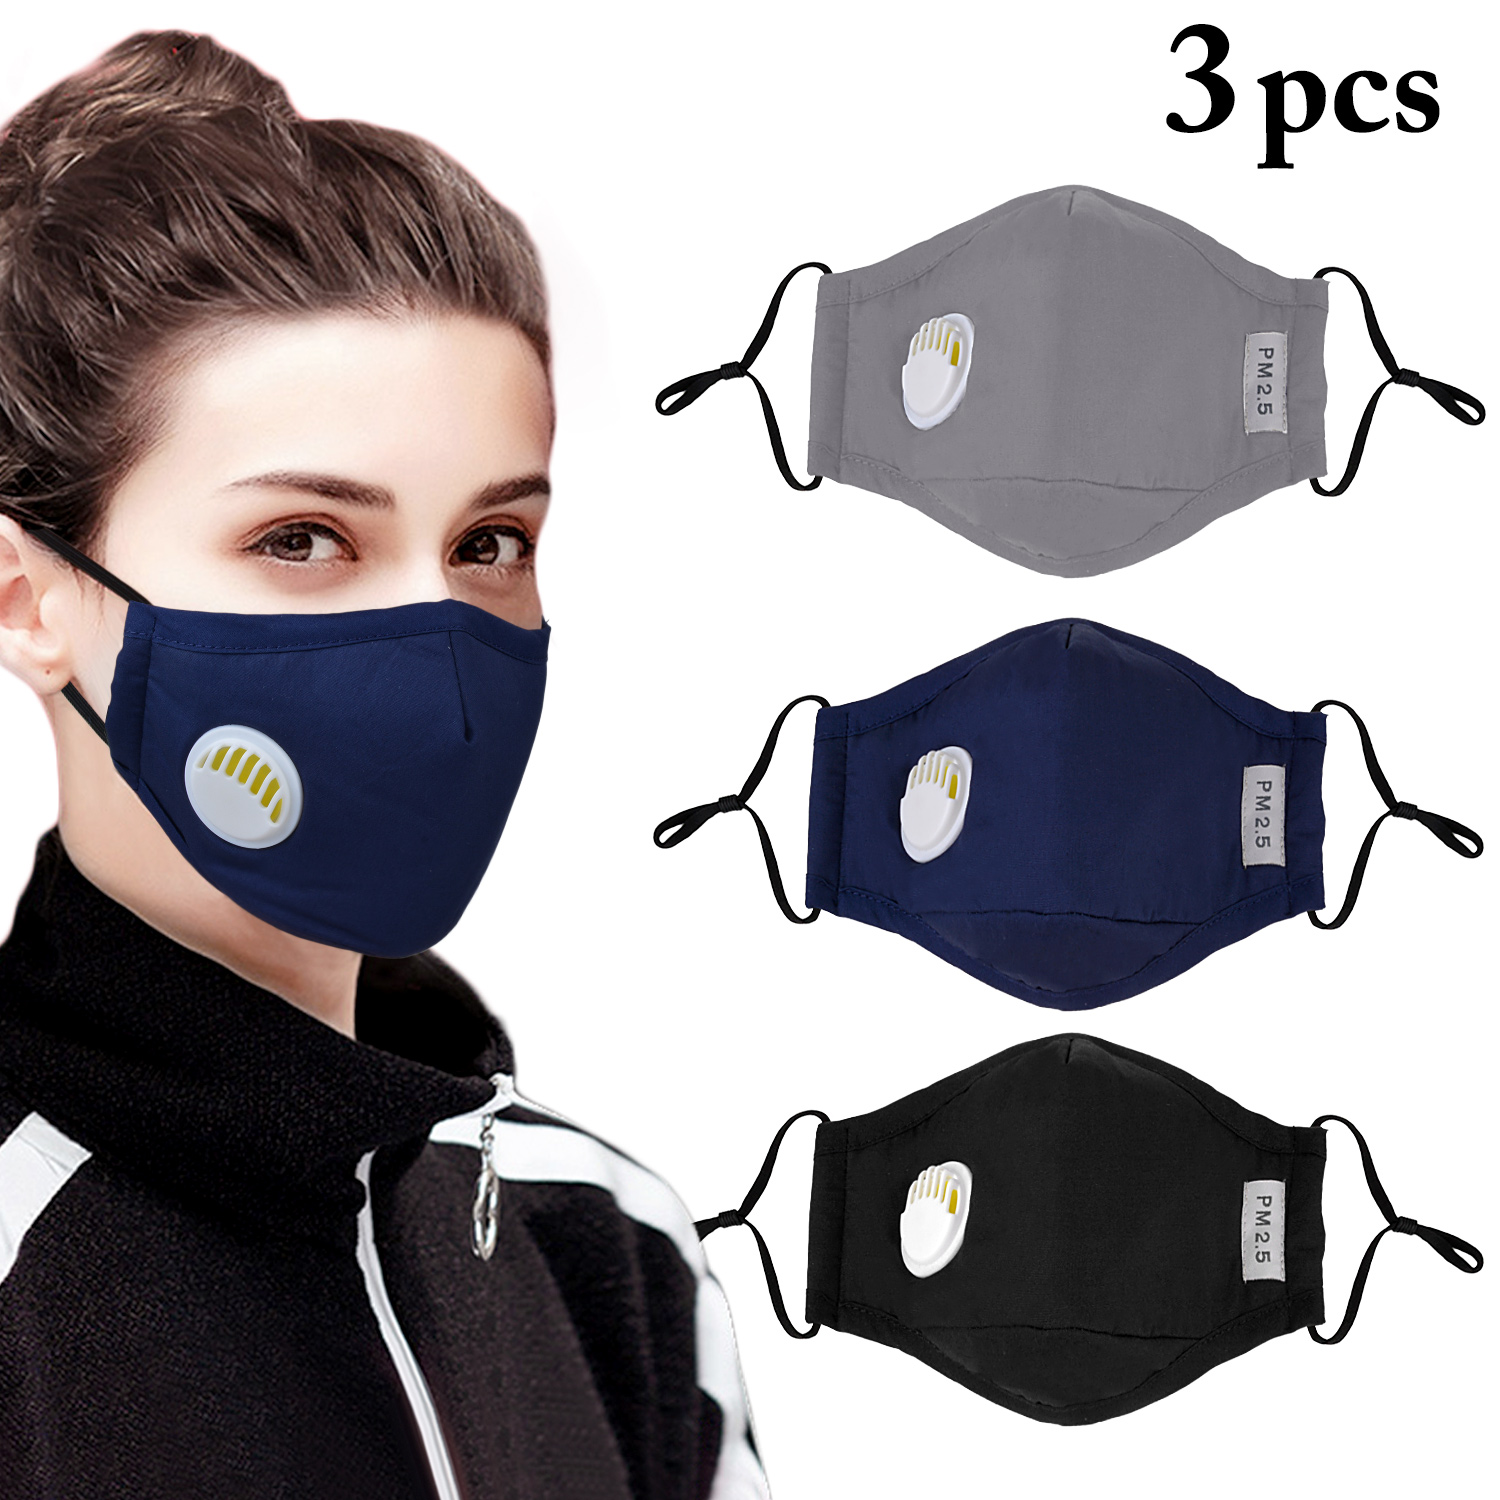 3PCS Unisex Mask Cotton Dustproof Mouth Face Mask Mouth Mask Activated Carbon PM2.5 Dust Proof Face Masks Mouth Covers Anti Dust